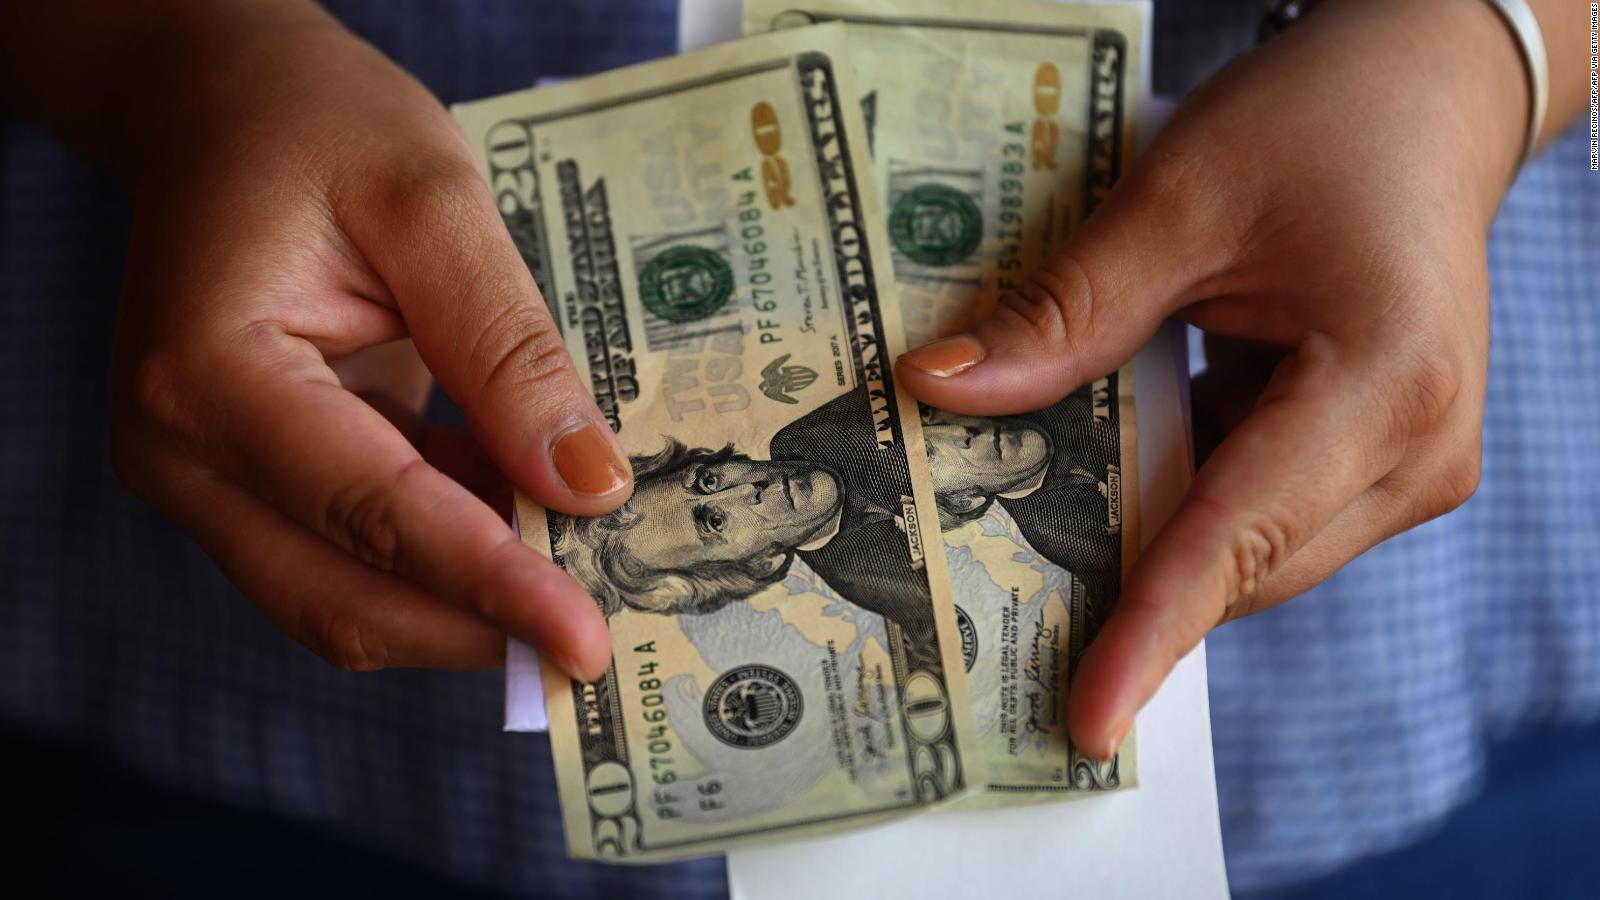 They are planning to bank the remittances of Mexicans in the US |  Video